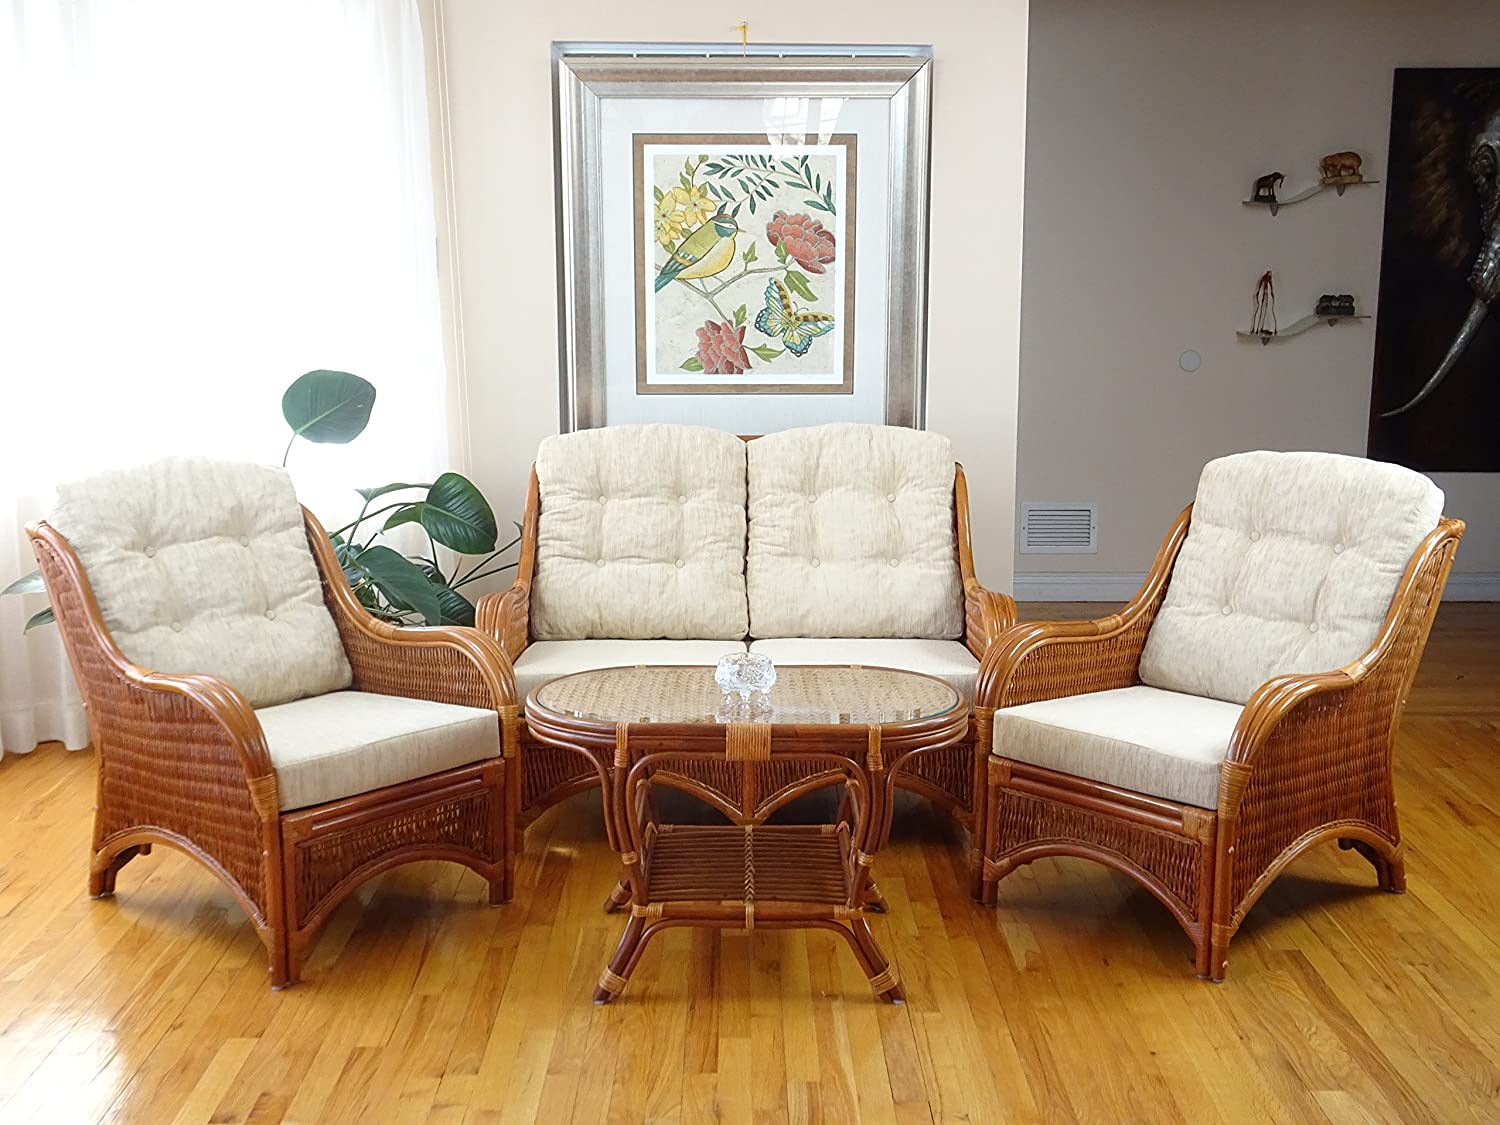 Jam Rattan Wicker Living Room Set 4 Pieces 2 Lounge Chair Loveseat sofa Coffee Table Colonial Light Brown . Cream Cushions.